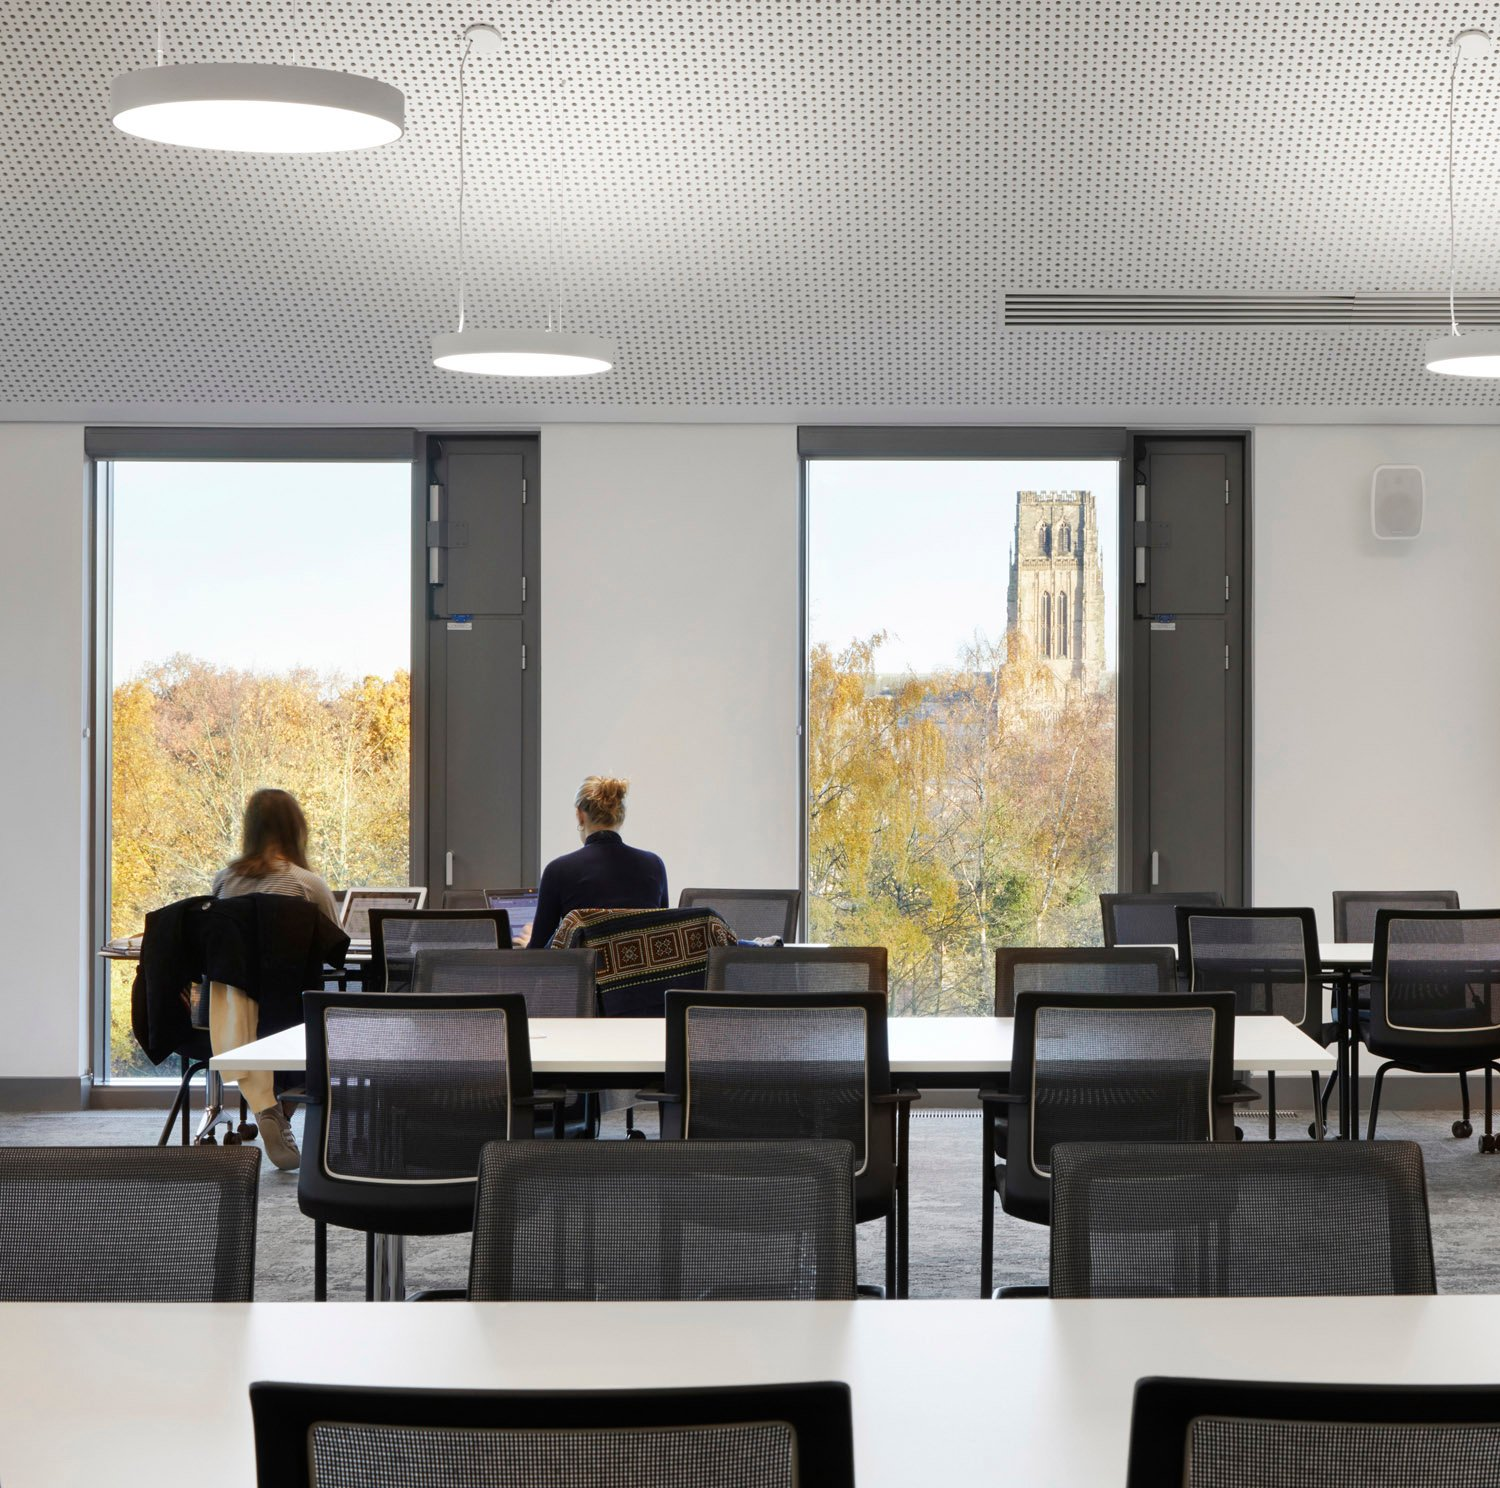 Full height windows provide views to the city's iconic cathedral Jack Hobhouse